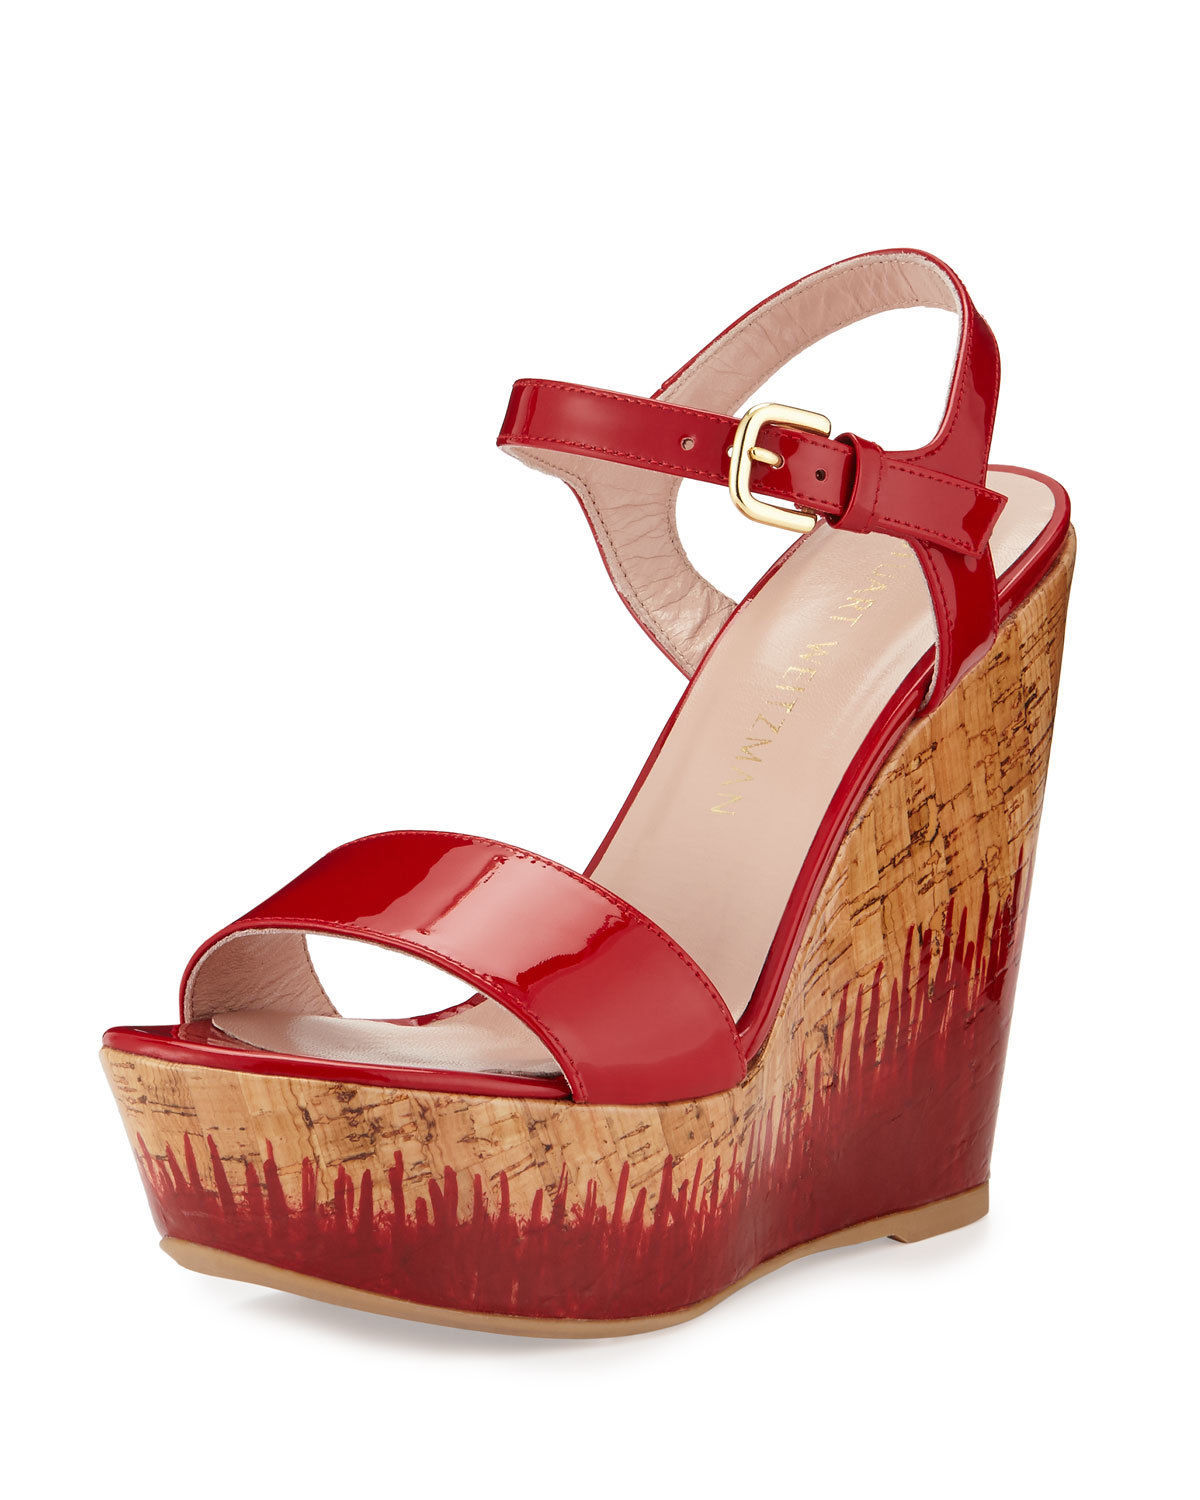 Primary image for Stuart Weitzman Single Sky Patent Cork Wedge Heel, Flame Mult Sz